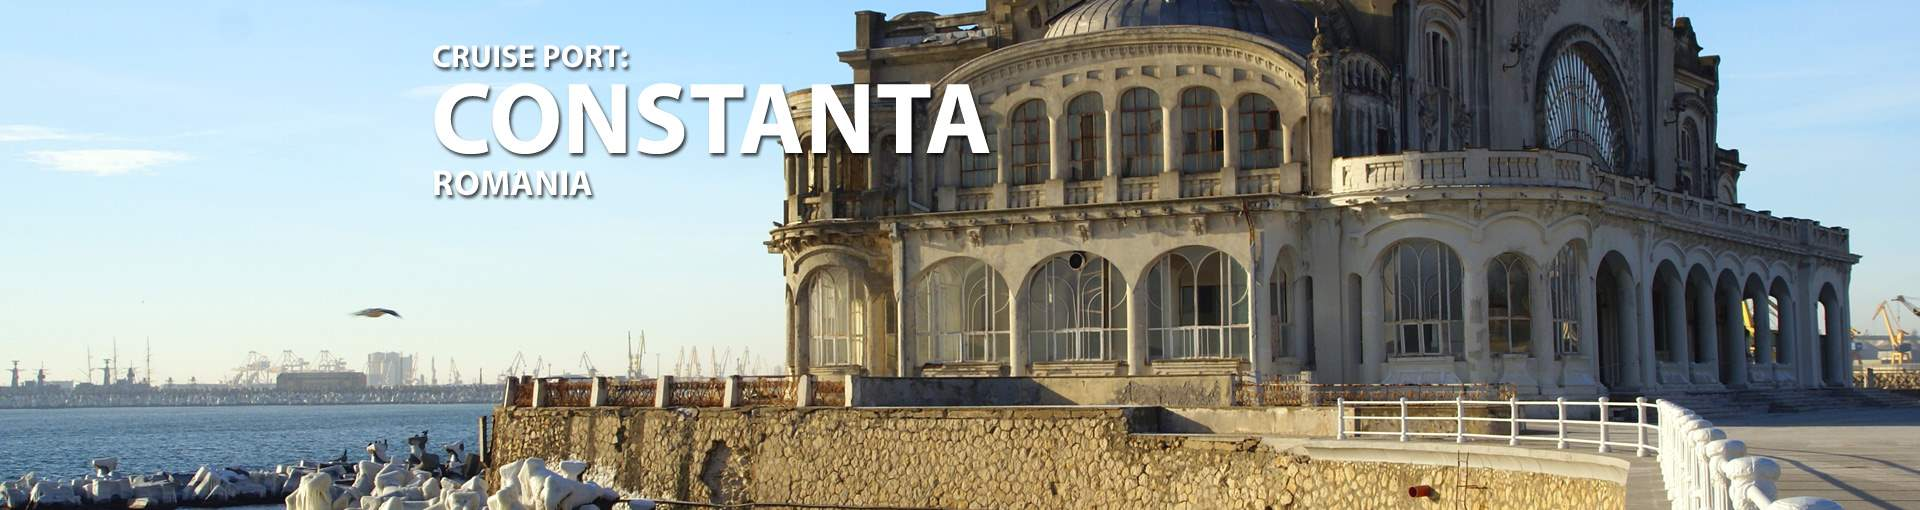 Cruises to Constanta, Romania